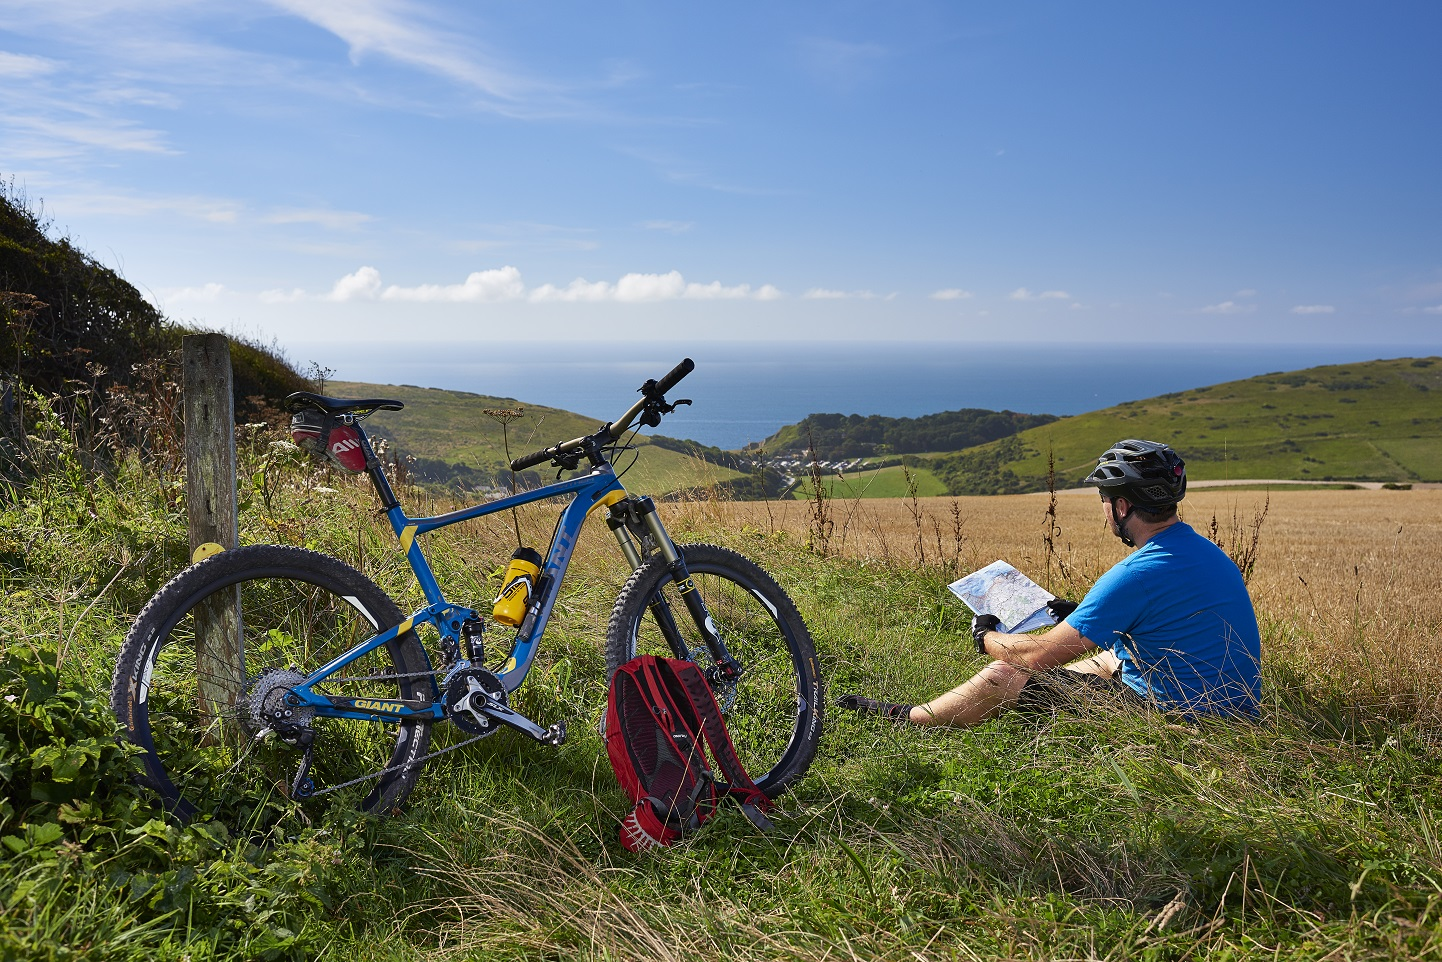 Incredible off-road biking event at Lulworth Estate in South Dorset